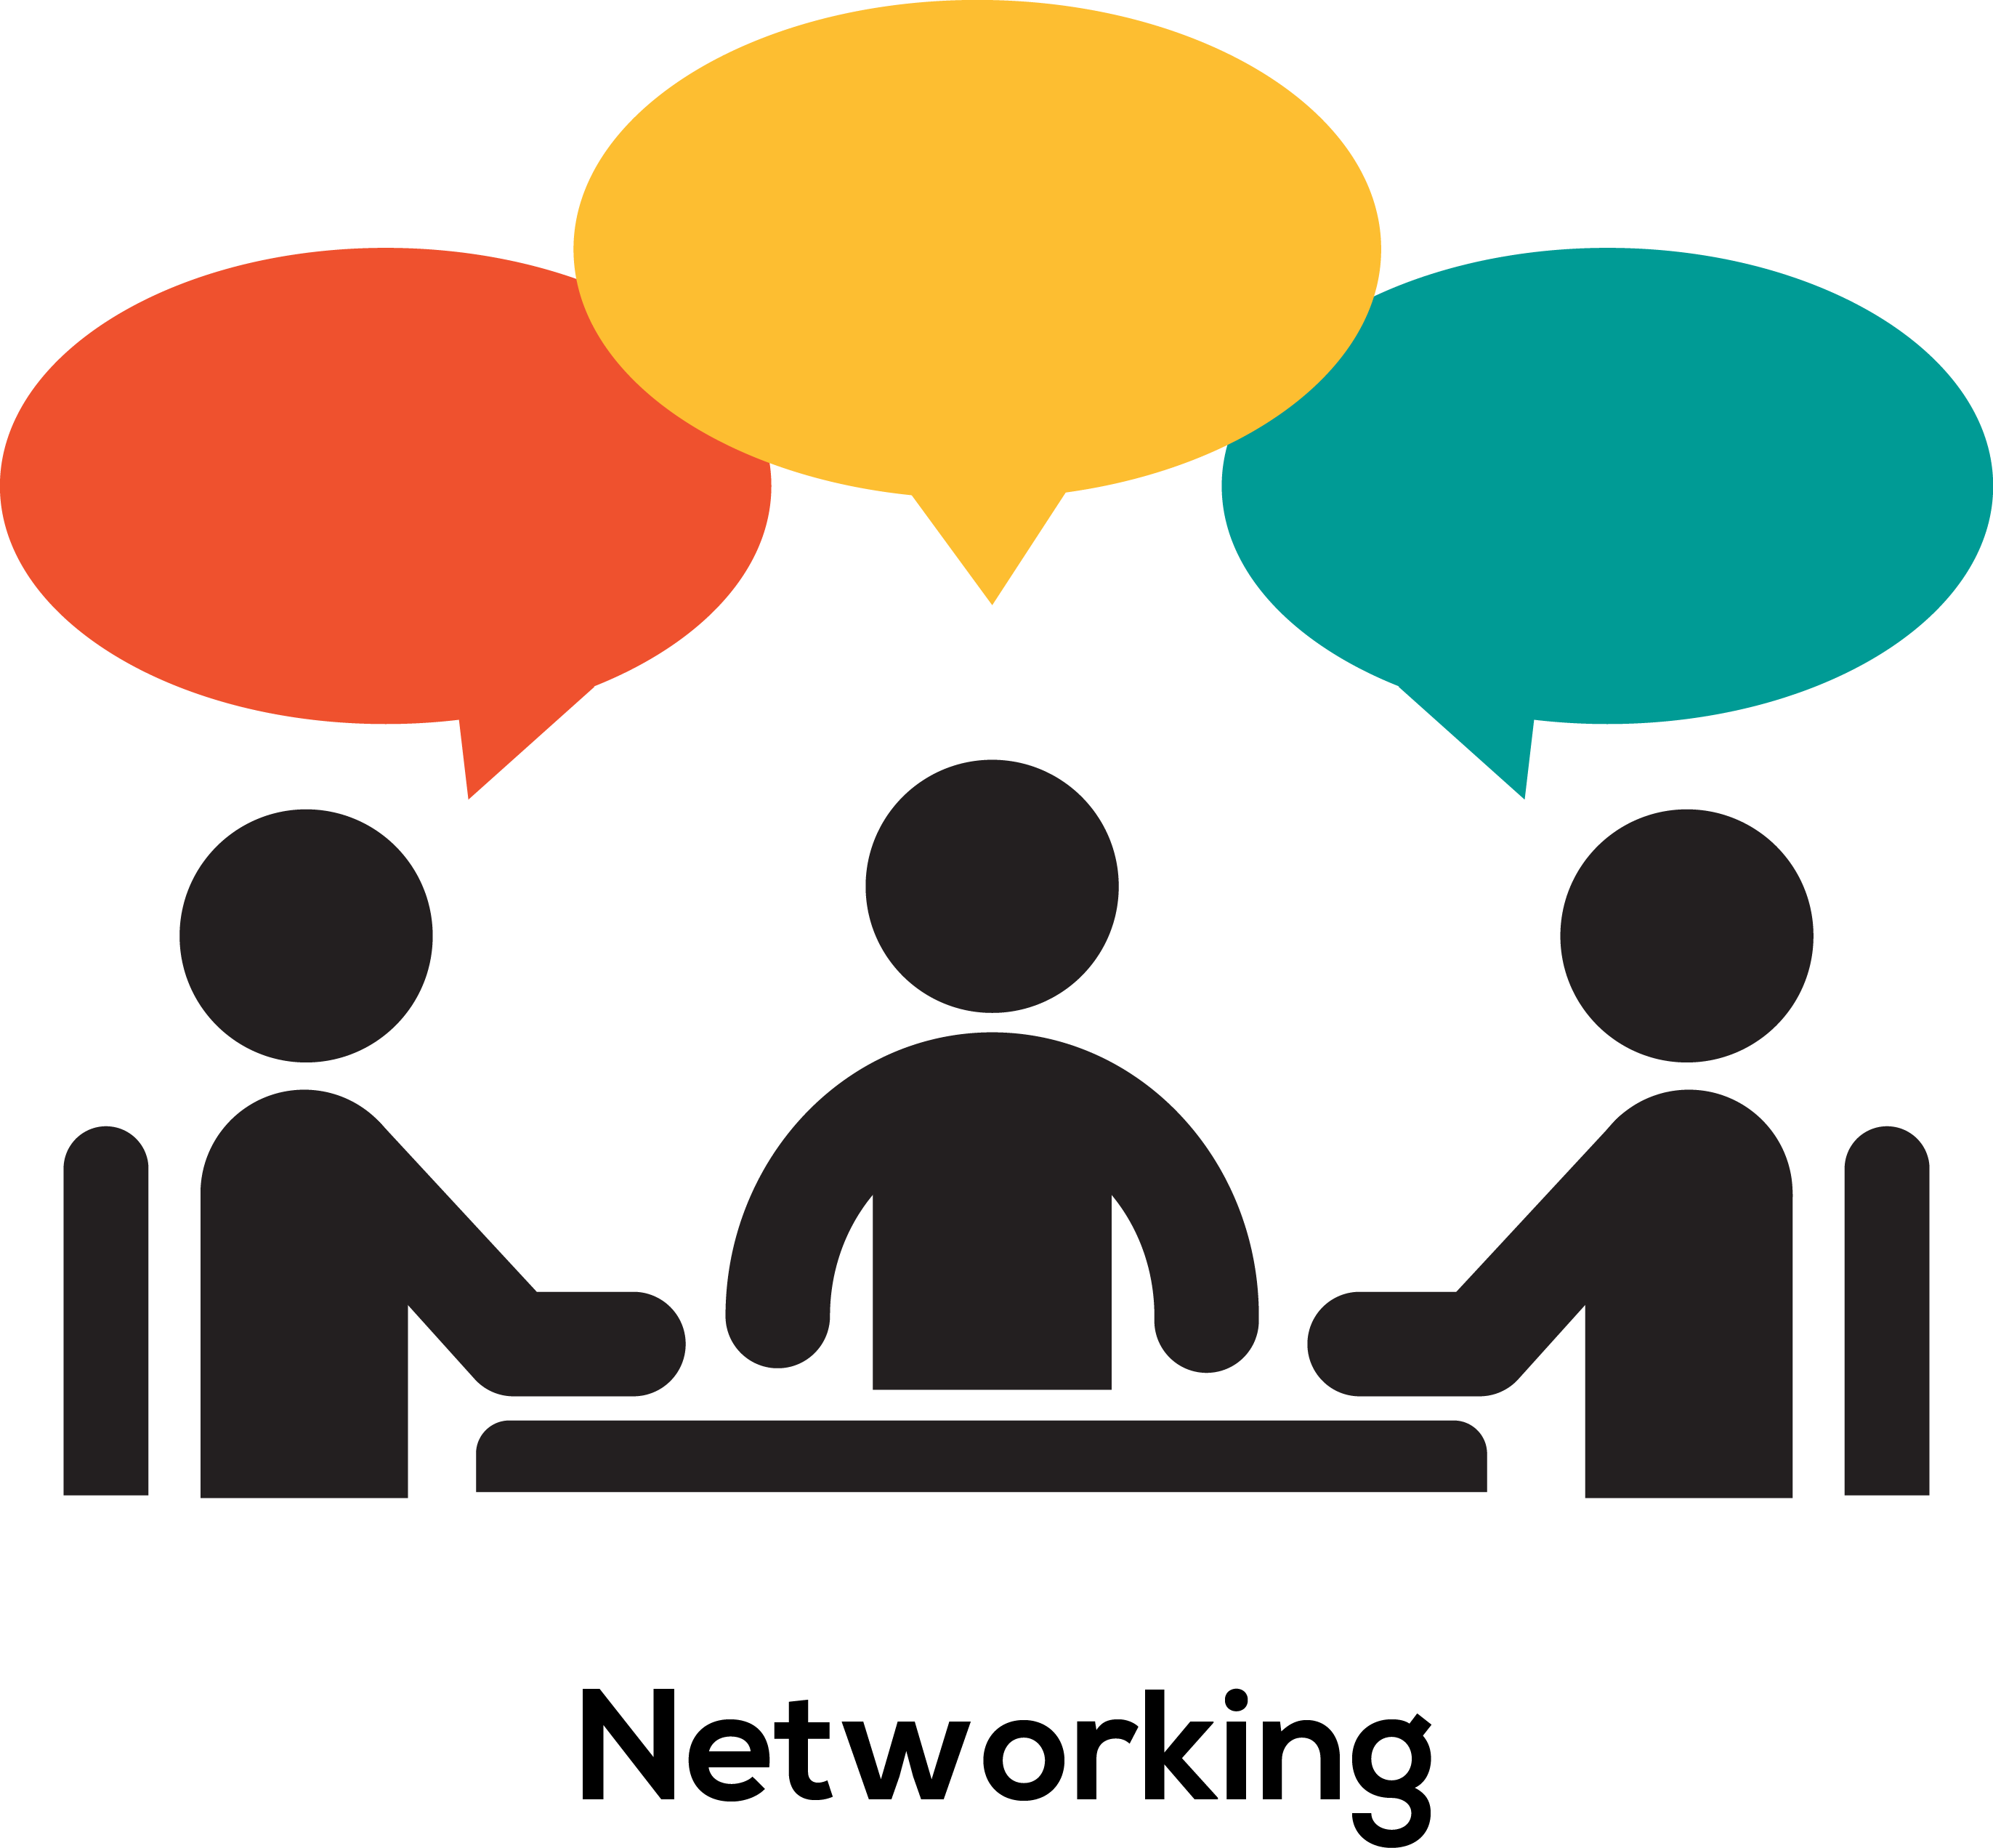 Glocal international teen gitc. Conference clipart business networking